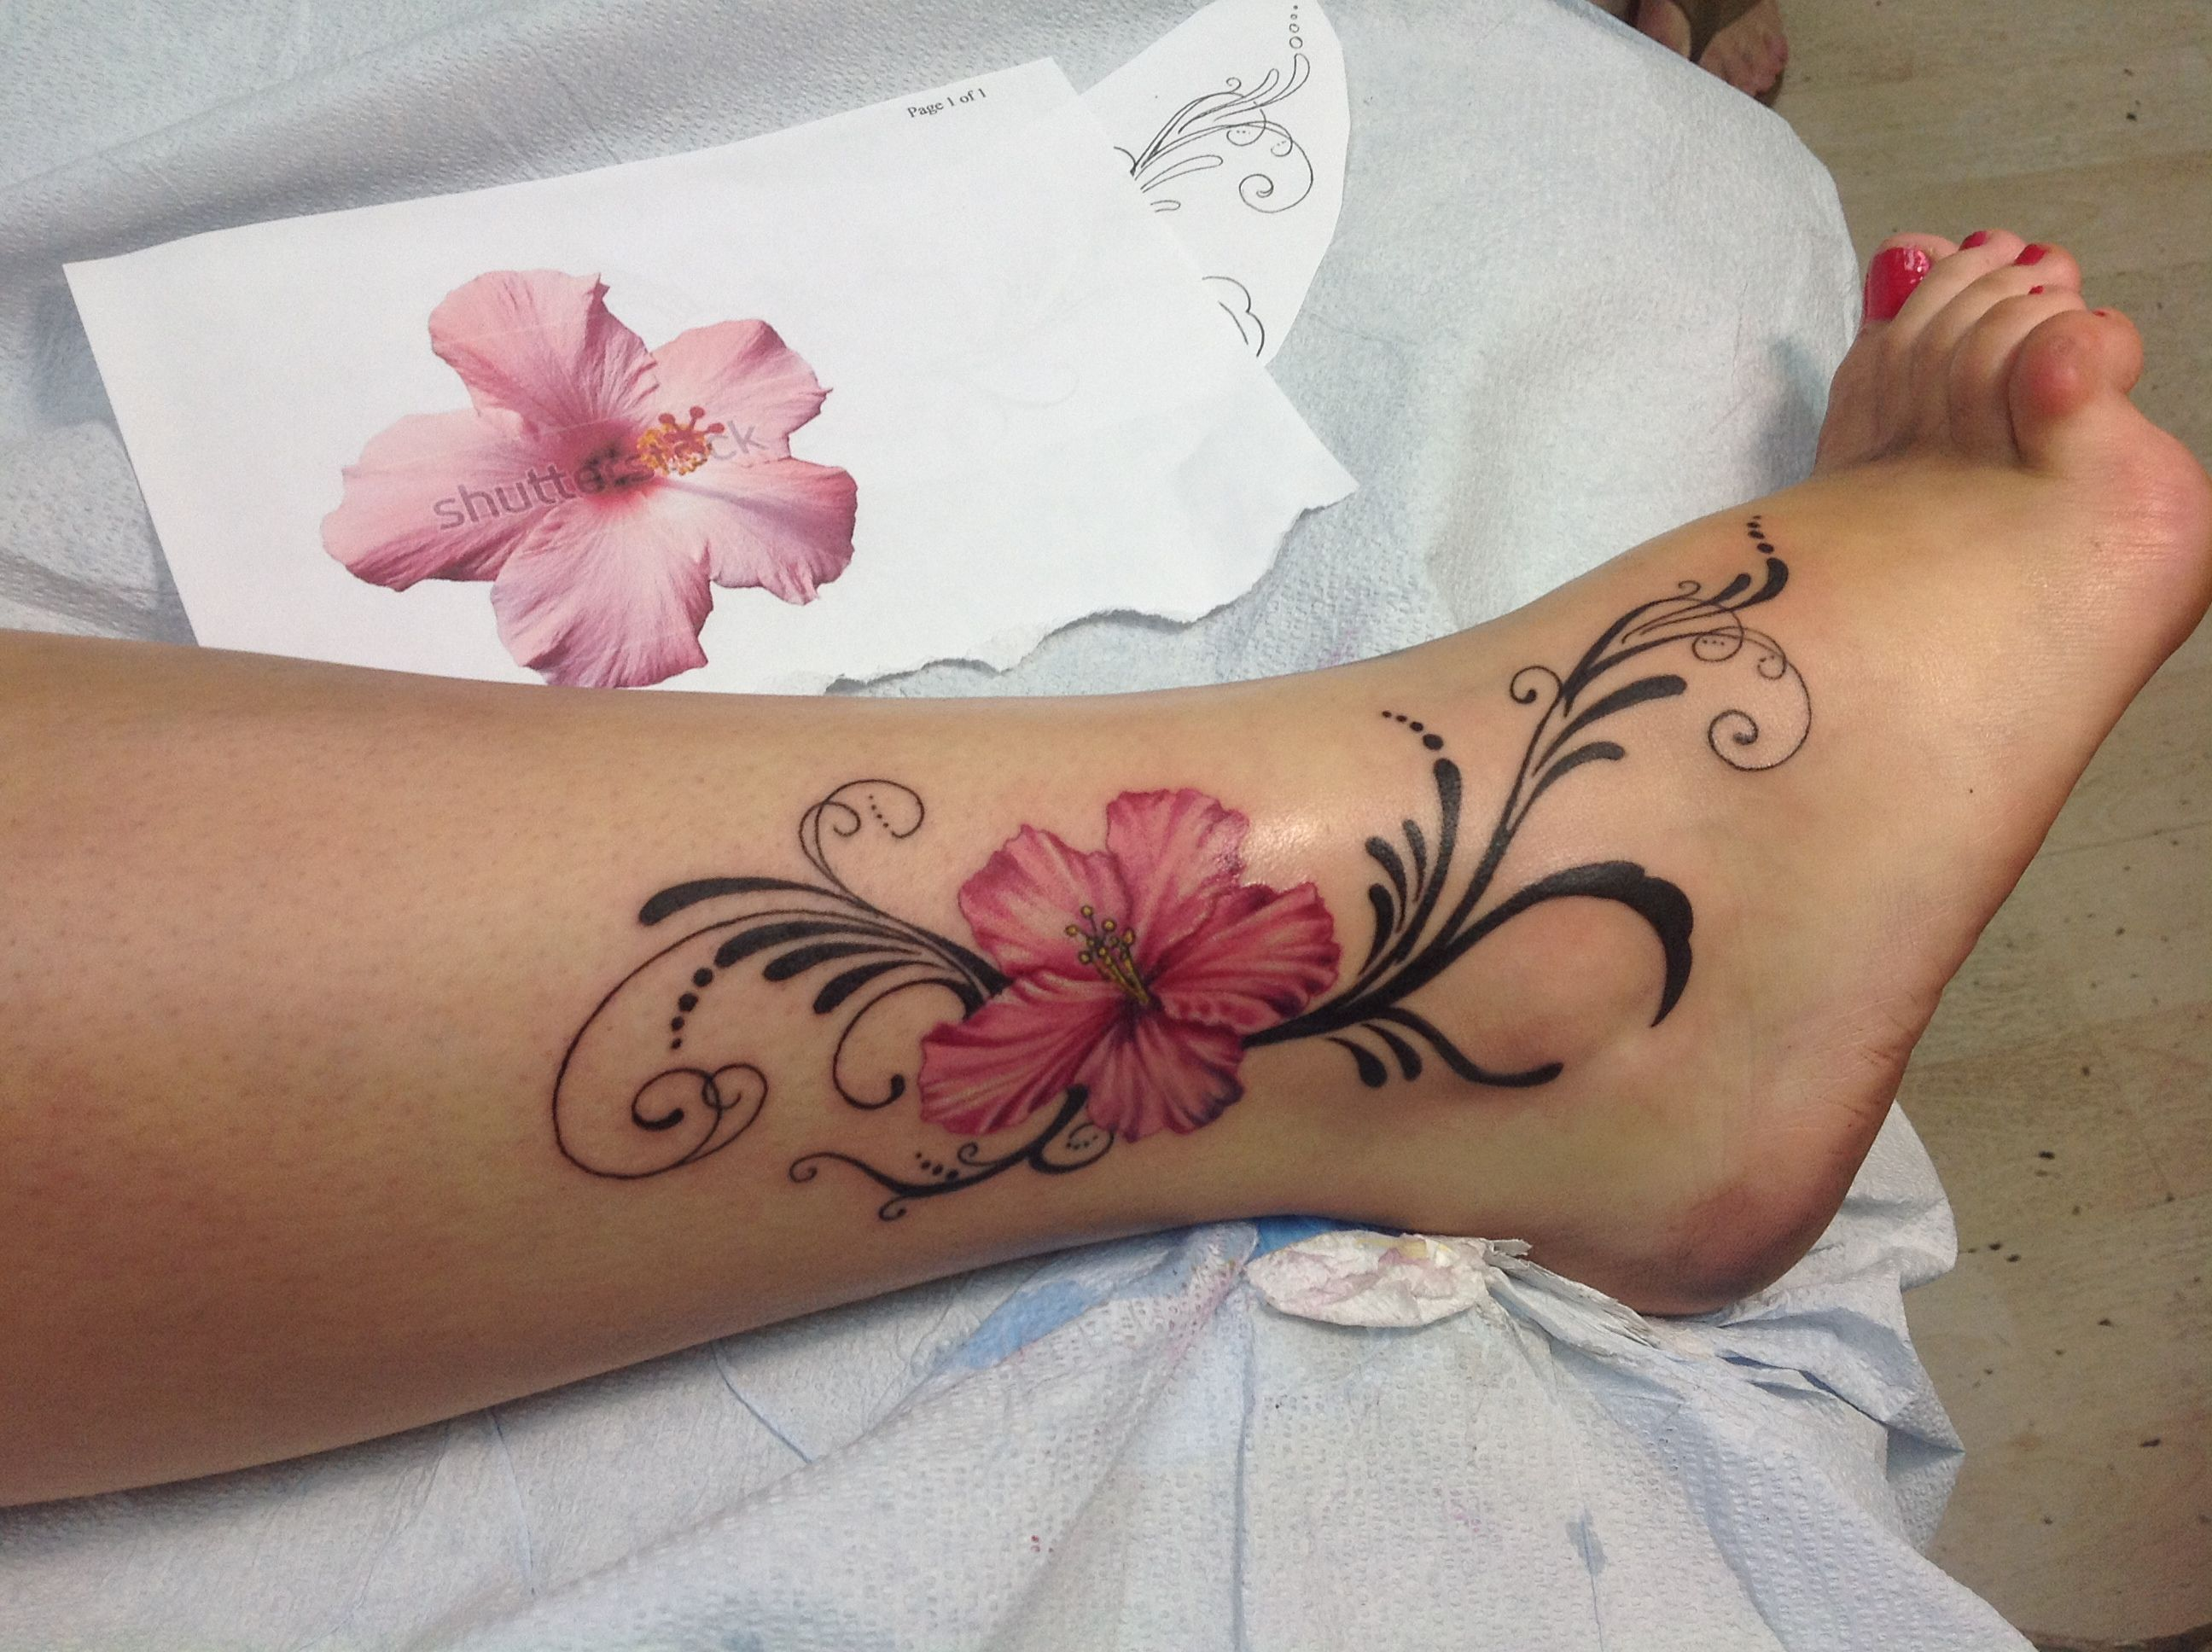 I Love My Tattoo 3 Hibiscus Flower And Swirls Tattoos Tattoos